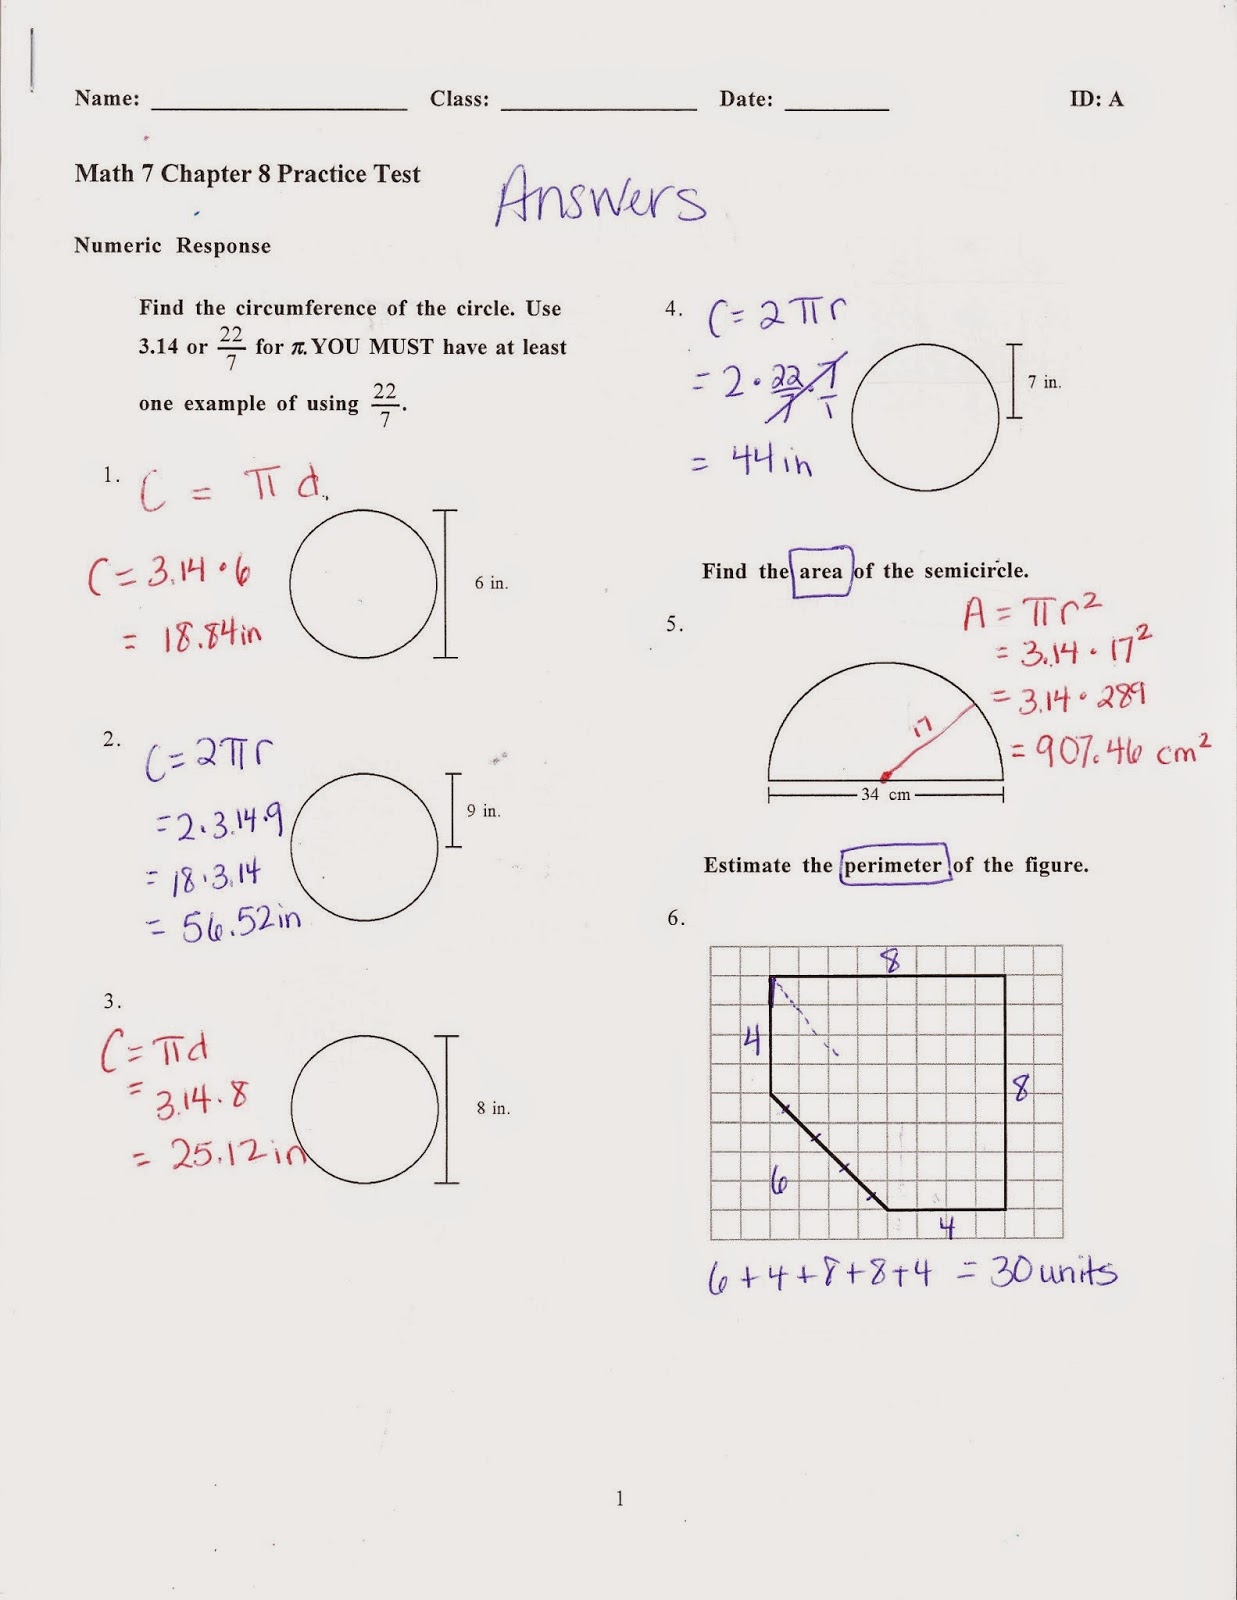 Ms Jean S Classroom Blog Math 7 Chapter 8 Practice Test Answers